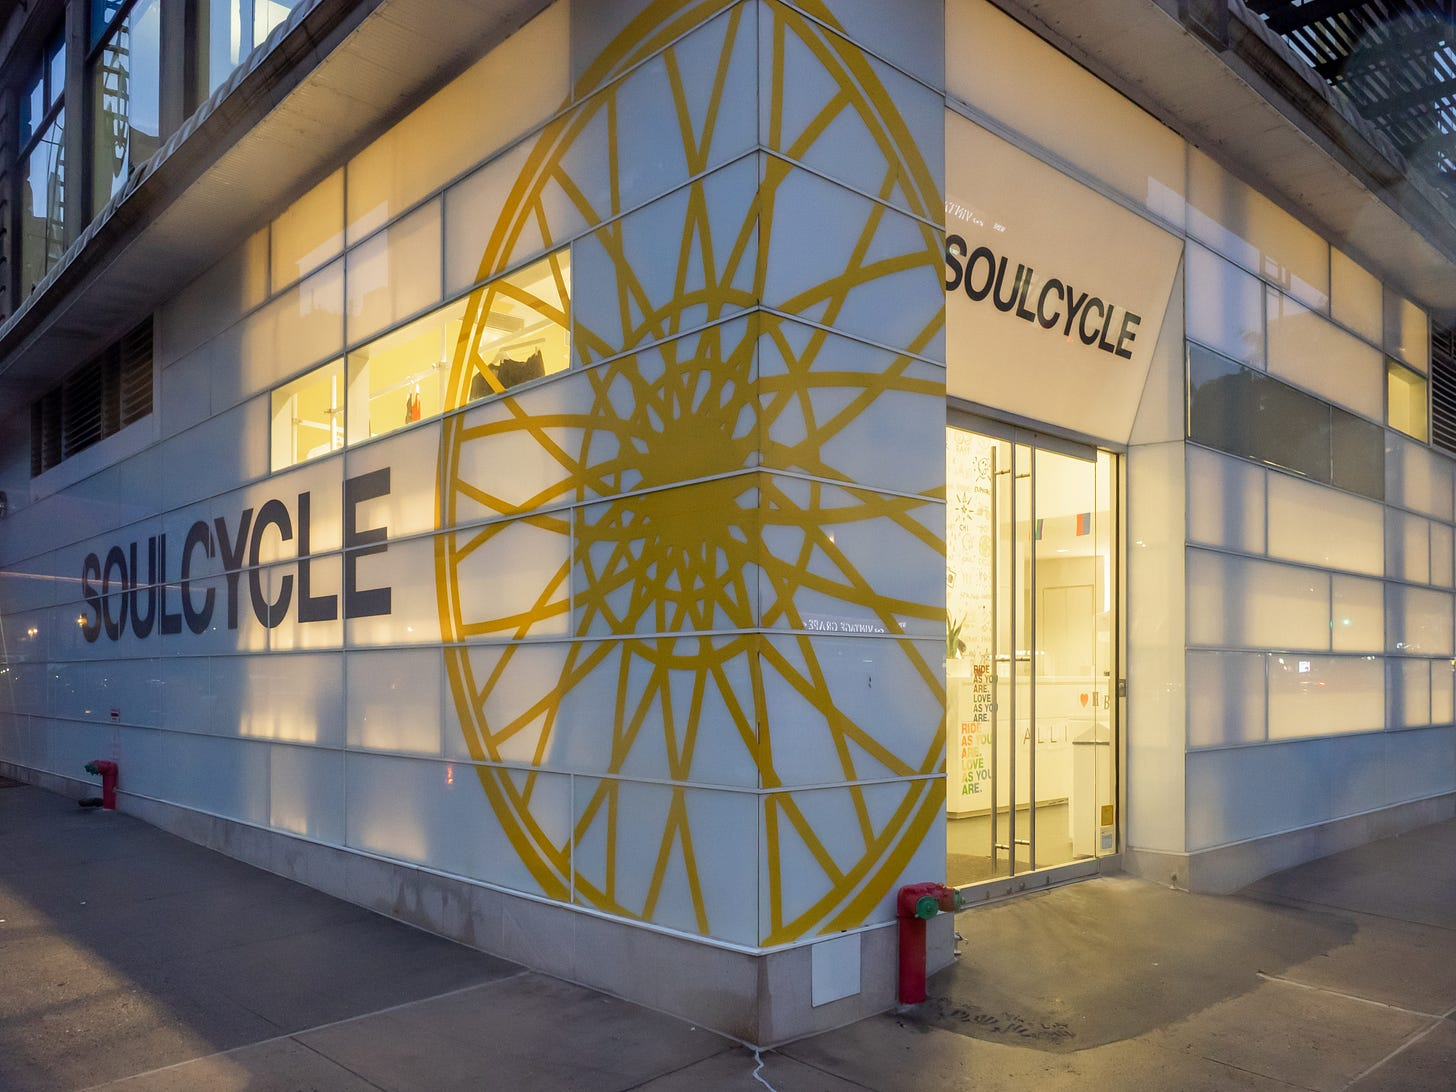 File:Soulcycle Storefront (48089757258).jpg - Wikimedia Commons